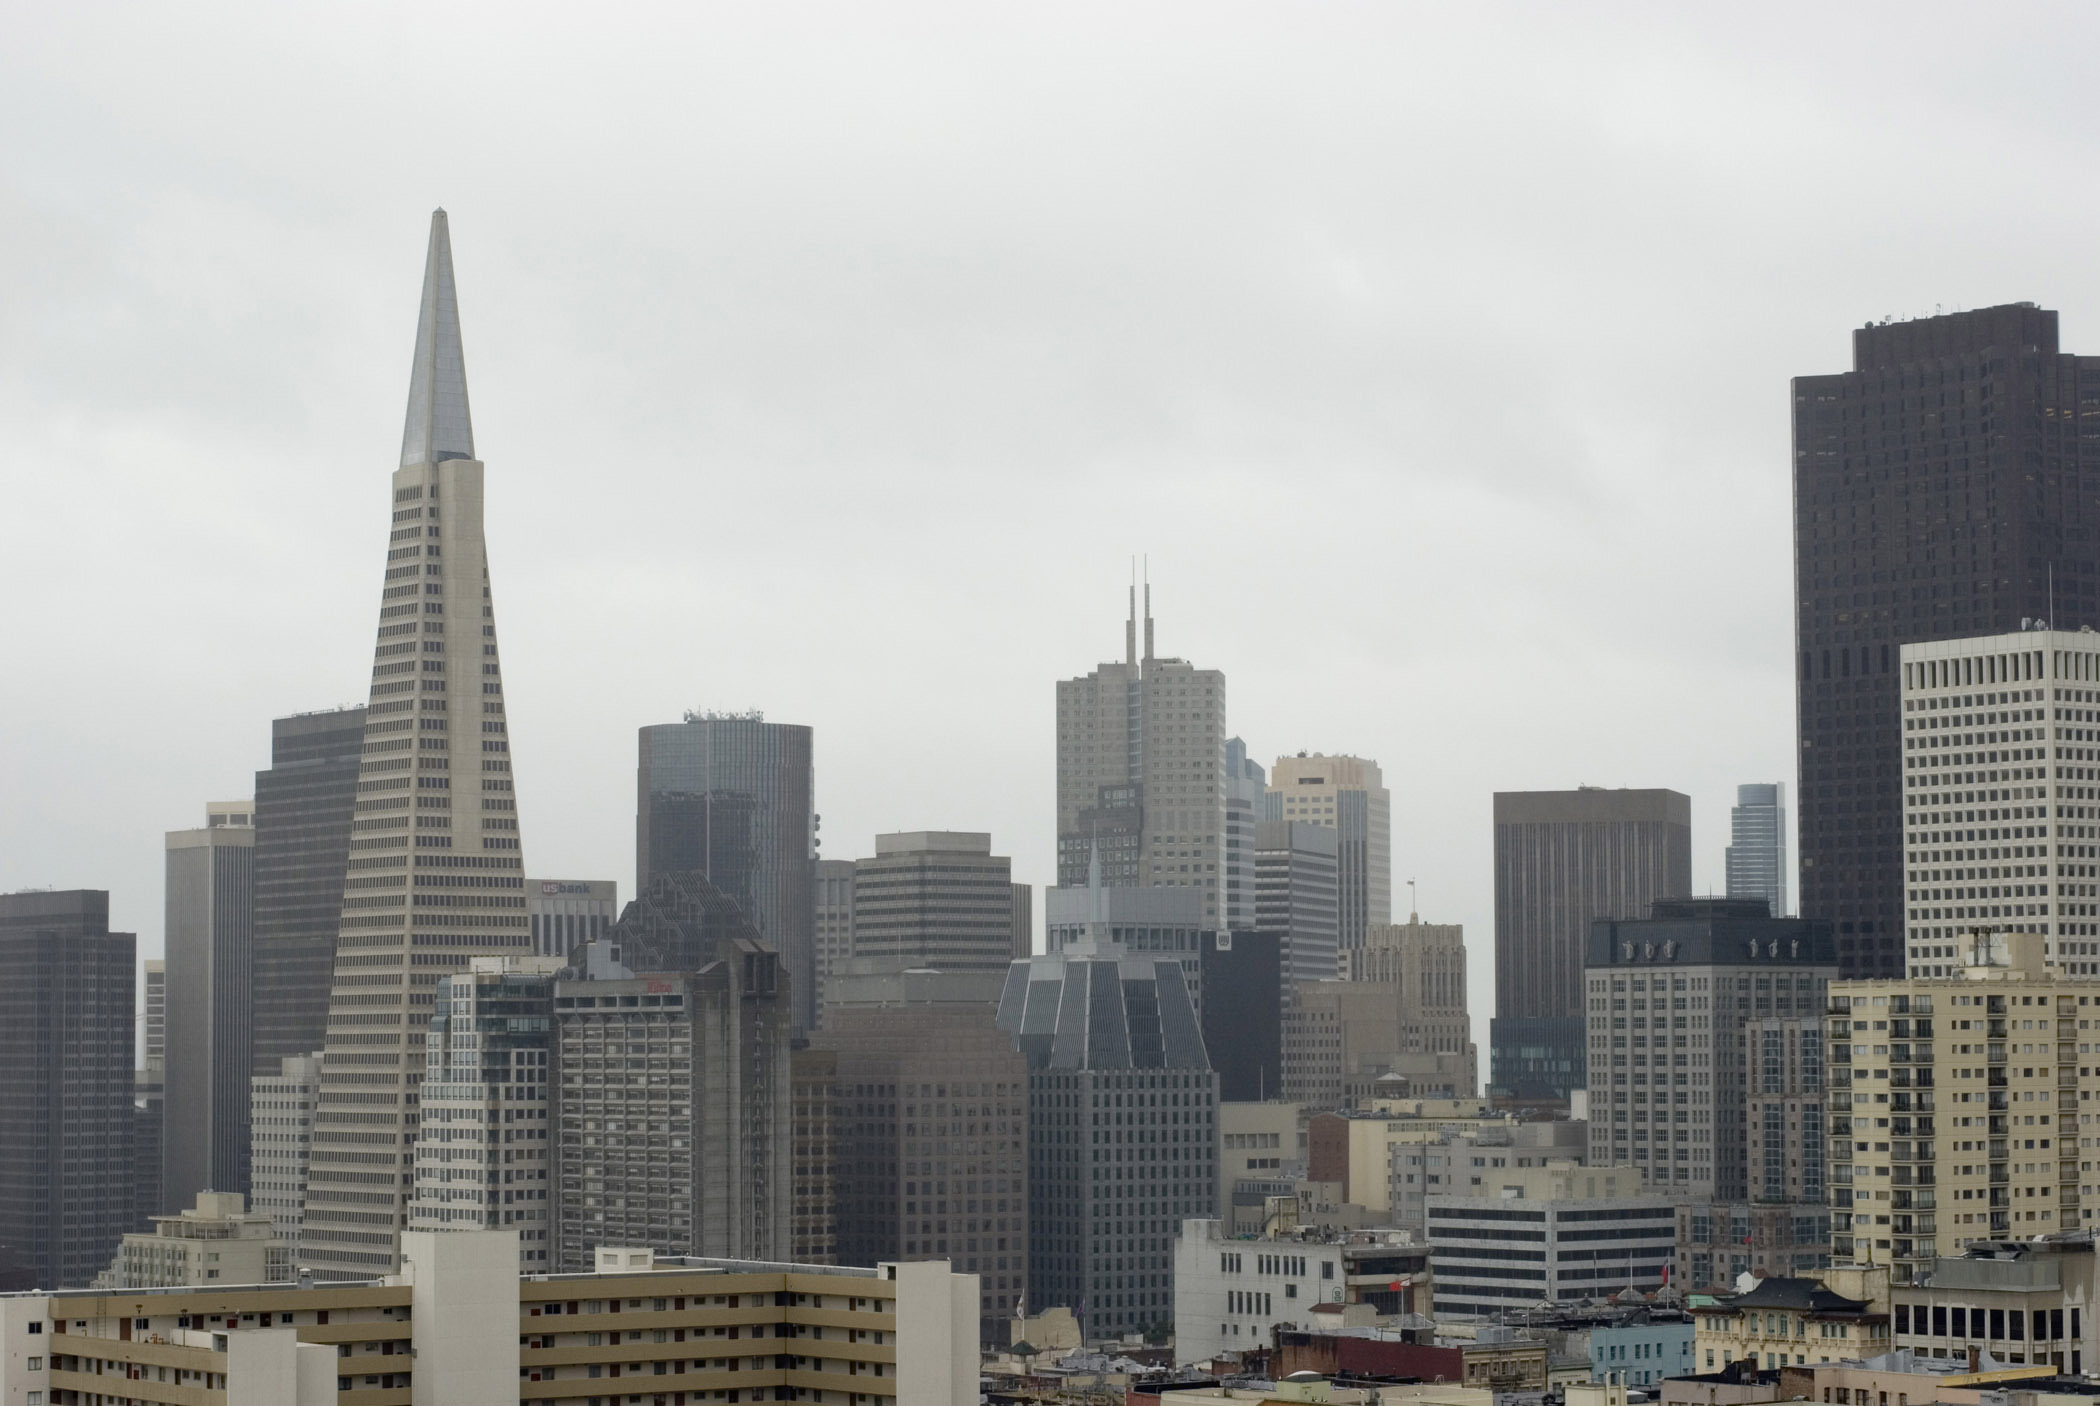 View of downtown San Francisco on a rainy day with the skyscrapers of the CBD and Transamerica Pyramid on the skyline